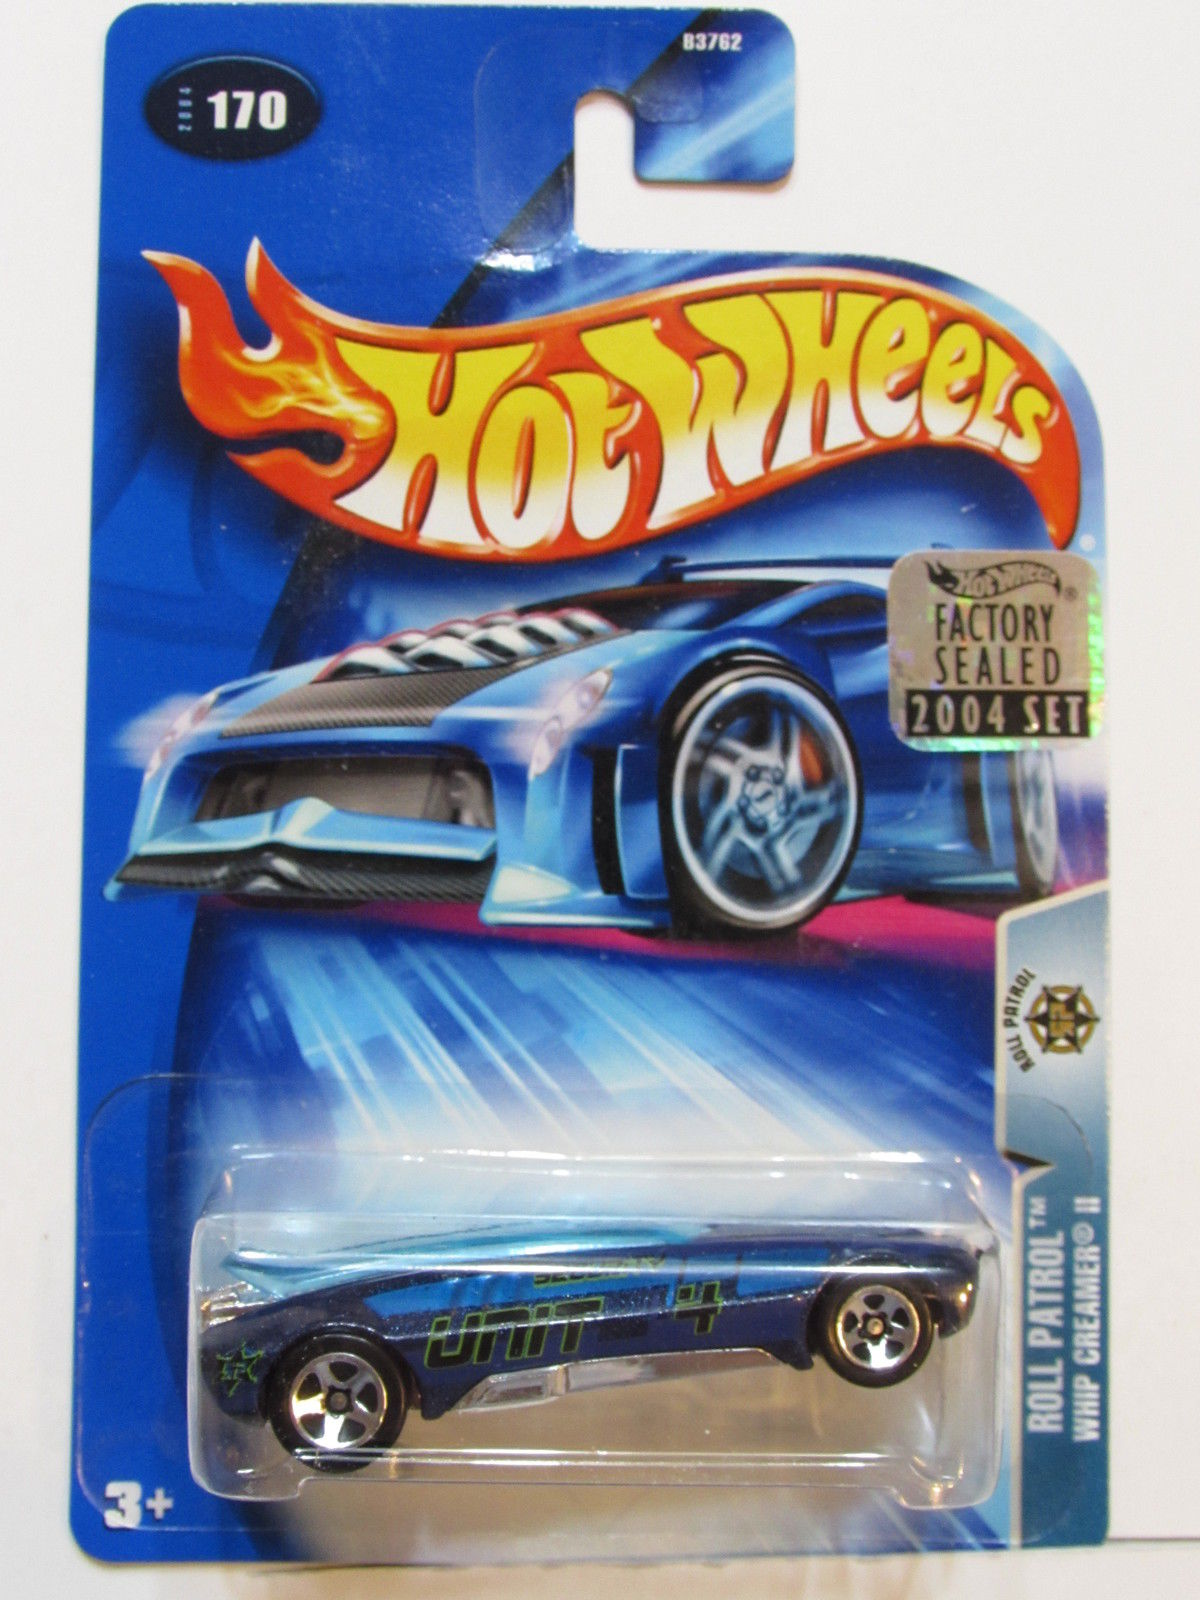 HOT WHEELS 2004 ROLL PATROL WHIP CREAMER #170 FACTORY SEALED